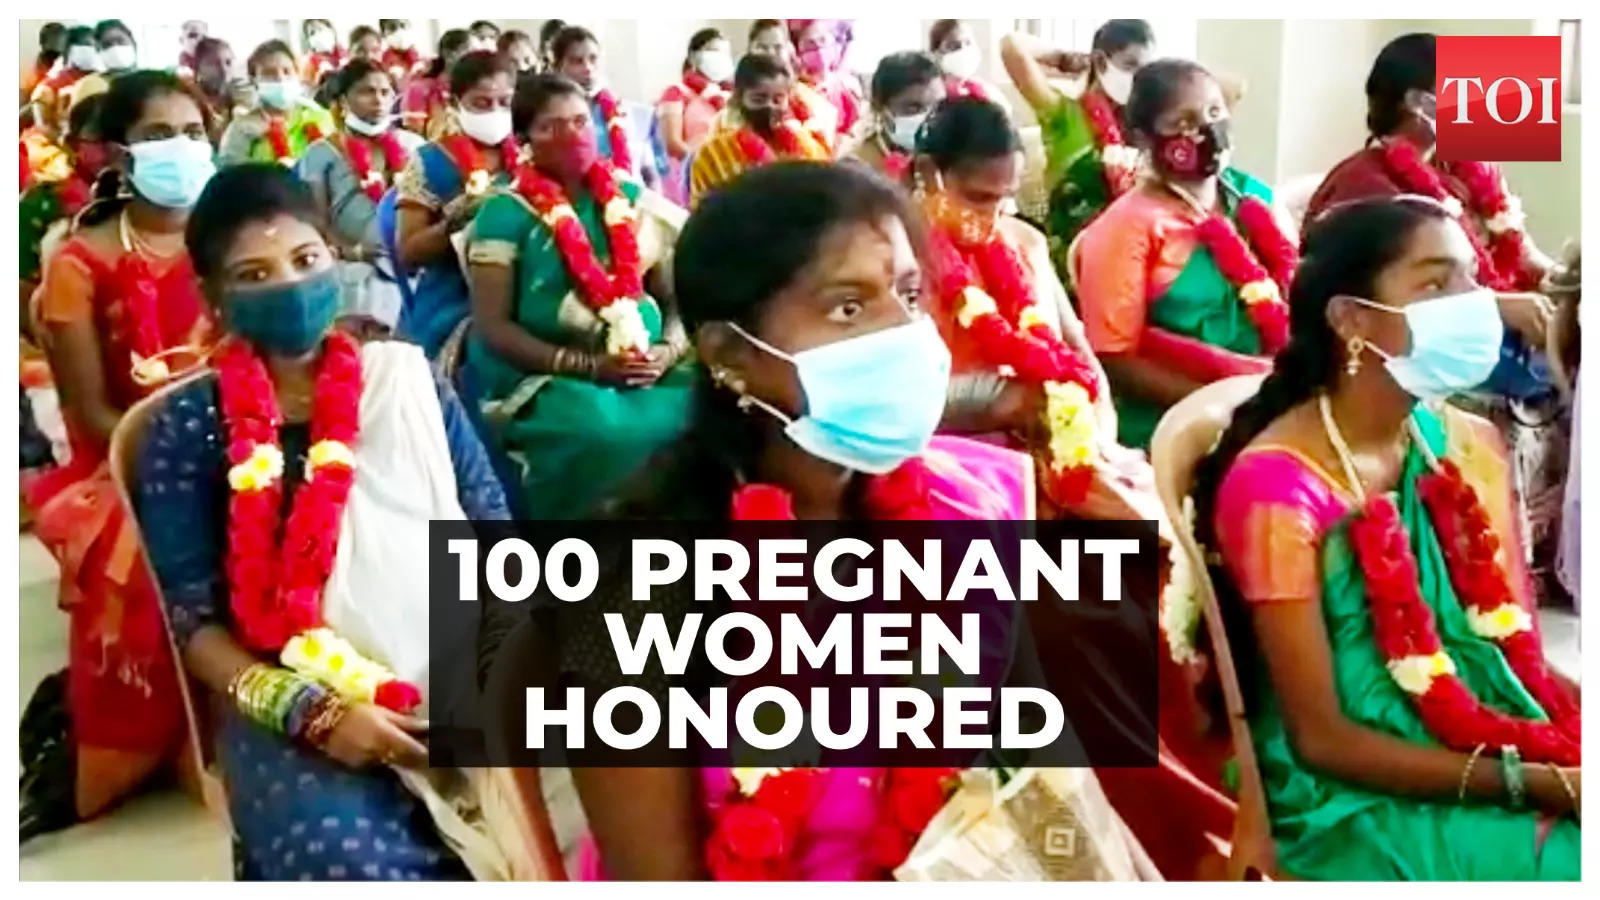 chennai-over-100-pregnant-women-honoured-in-7-month-ceremony